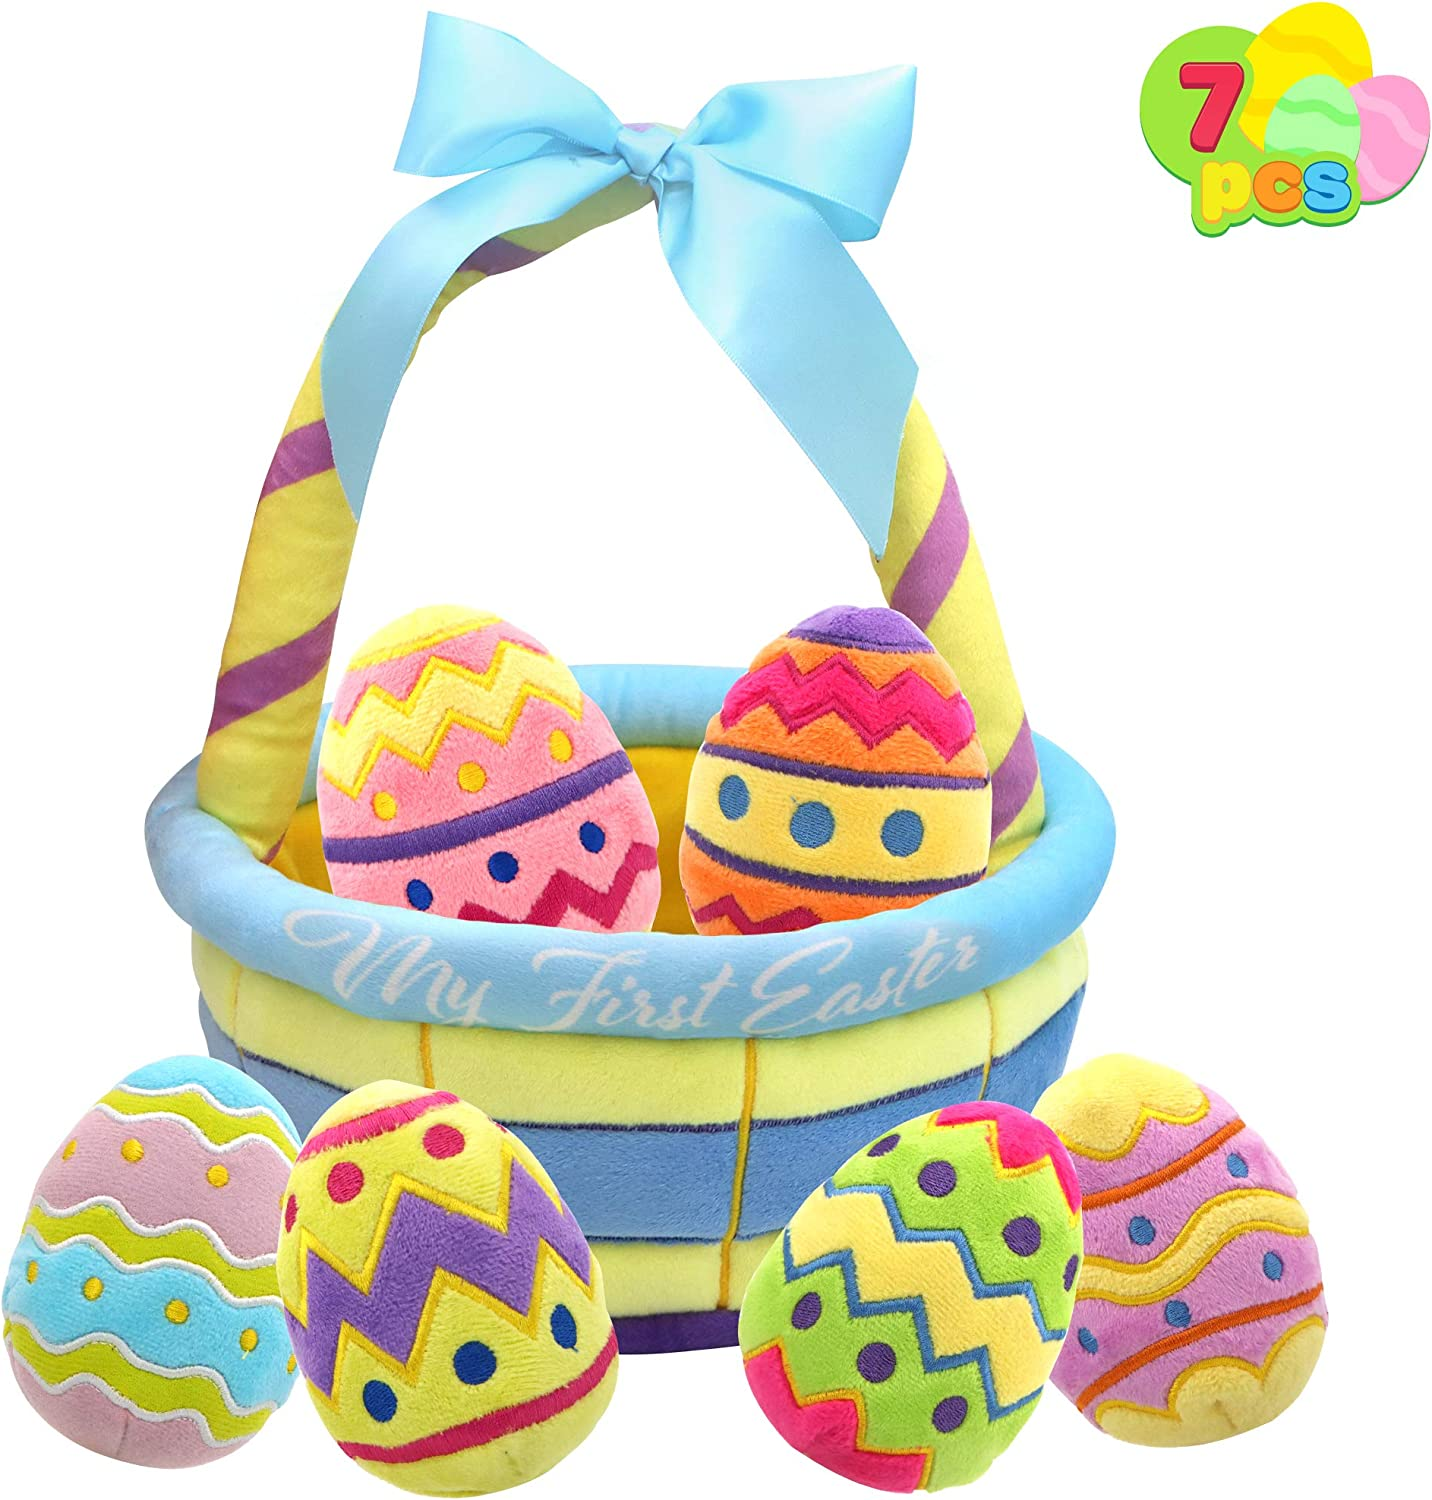 JOYIN 7 Pcs My First Easter Eggs Basket Baby plushies playset Basket Stuffers Toys for Easter Party Favors, Plush Easter Basket for Baby, Toddler & Kids of All Ages